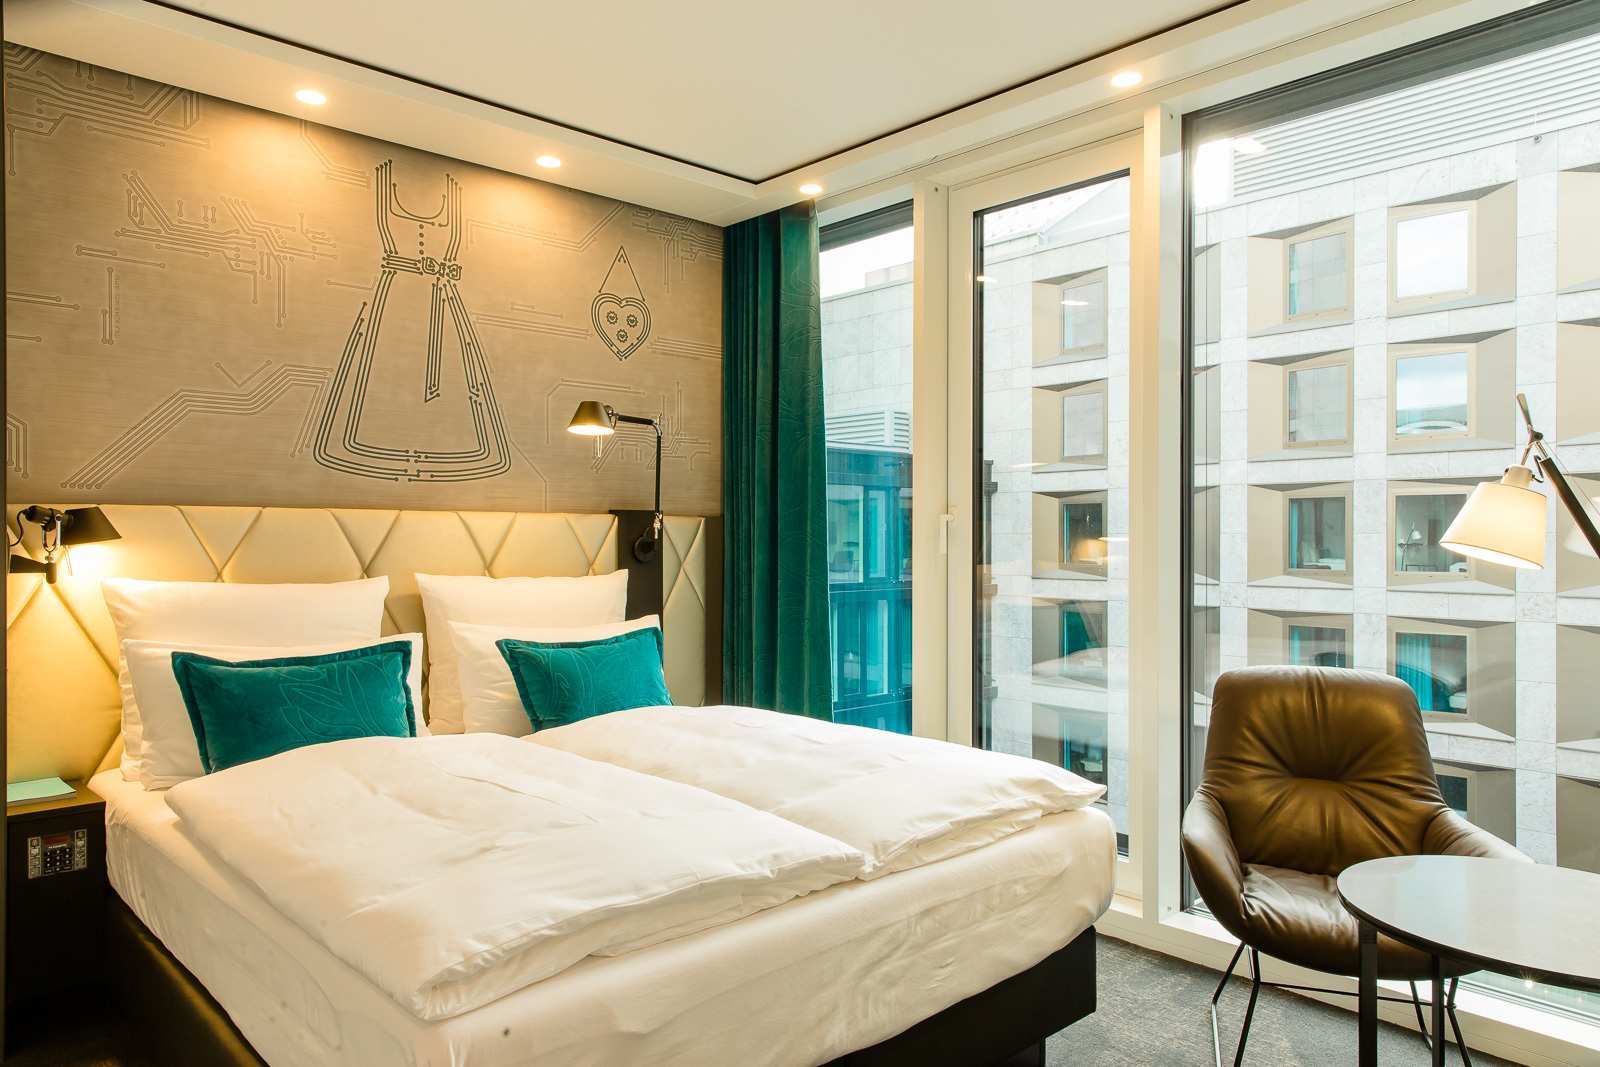 Hotel One Garching Hotel Munich Parkstadt Schwabing Motel One Design Hotels